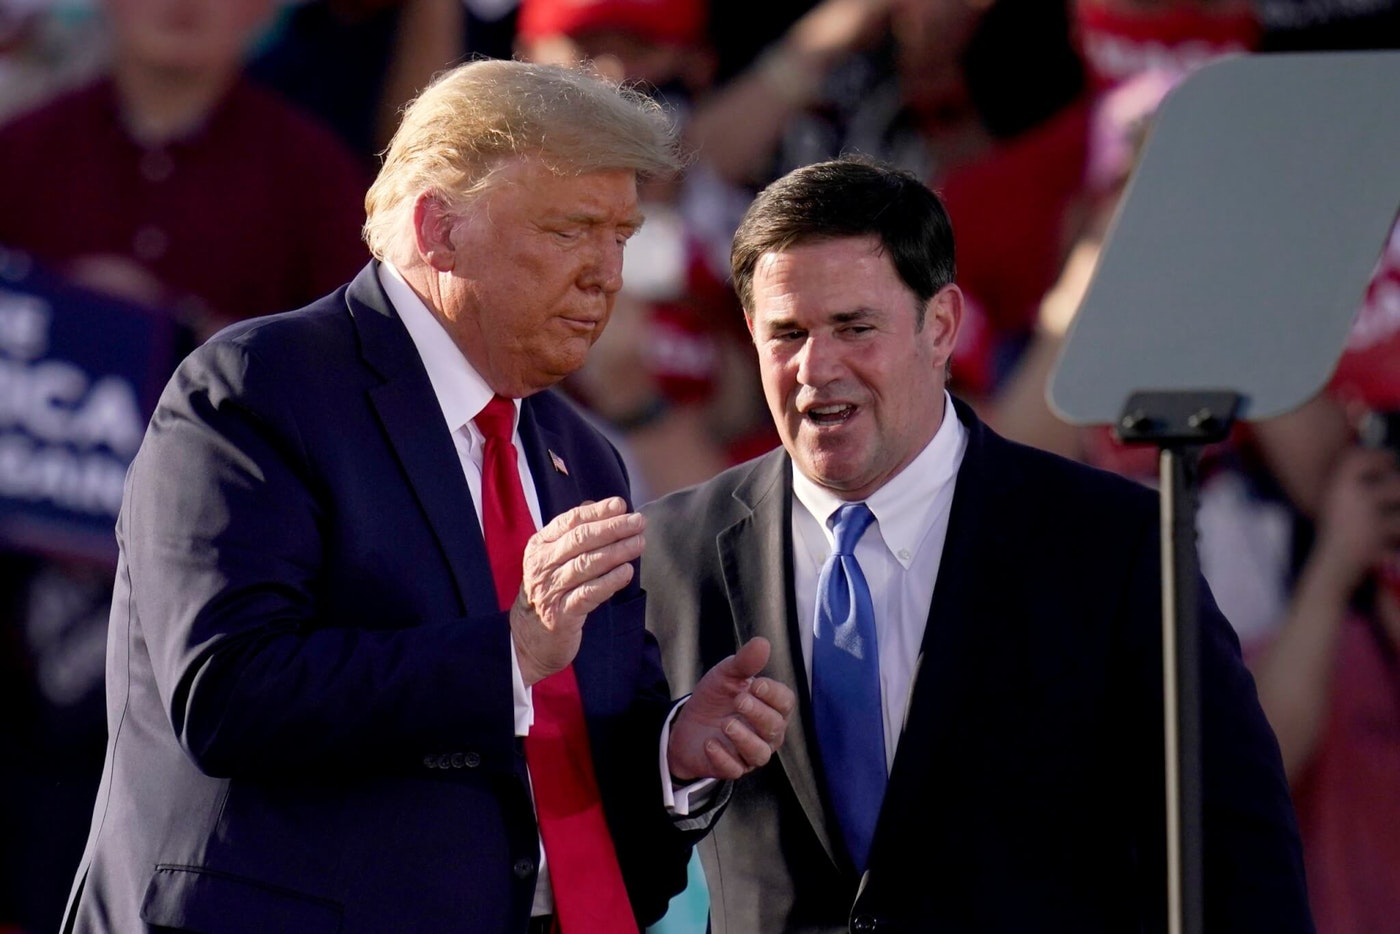 President Donald Trump, left, pauses with Arizona Gov. Doug Ducey during a campaign rally Monday, Oct. 19, 2020, in Tucson, Ariz. (AP Photo/Ross D. Franklin)